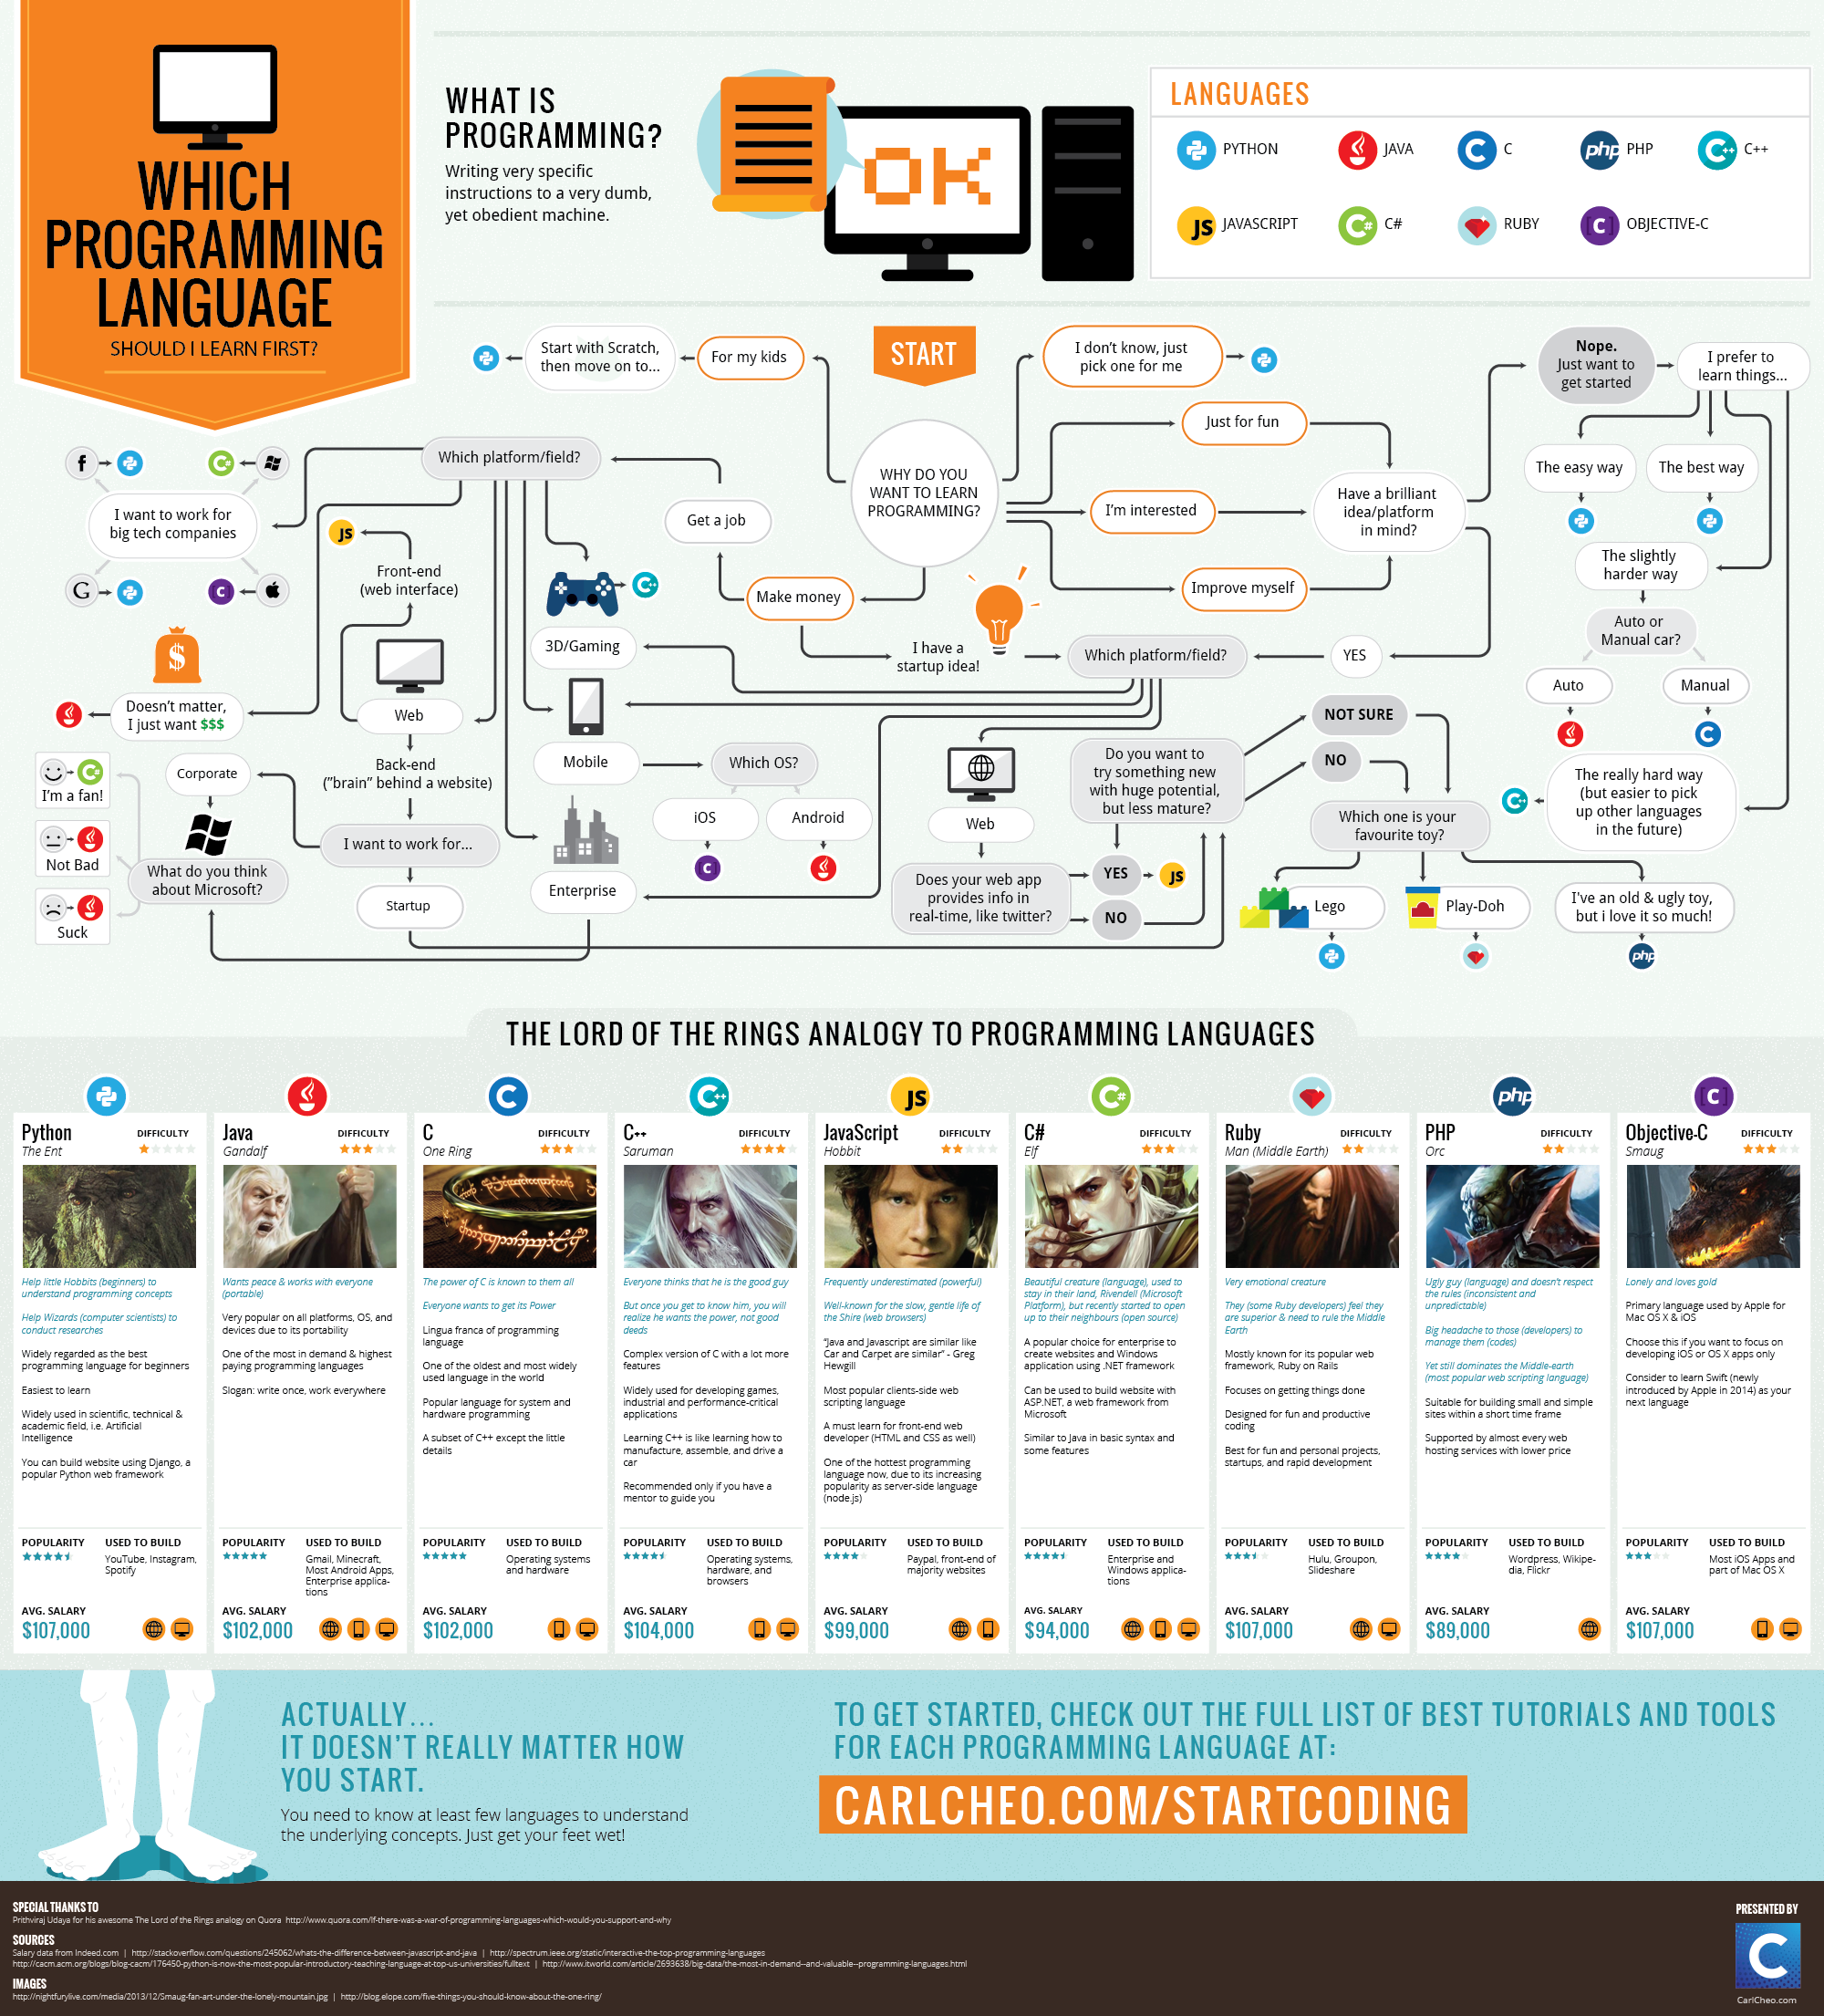 Which Programming Language Should I Learn First? [Infographic]